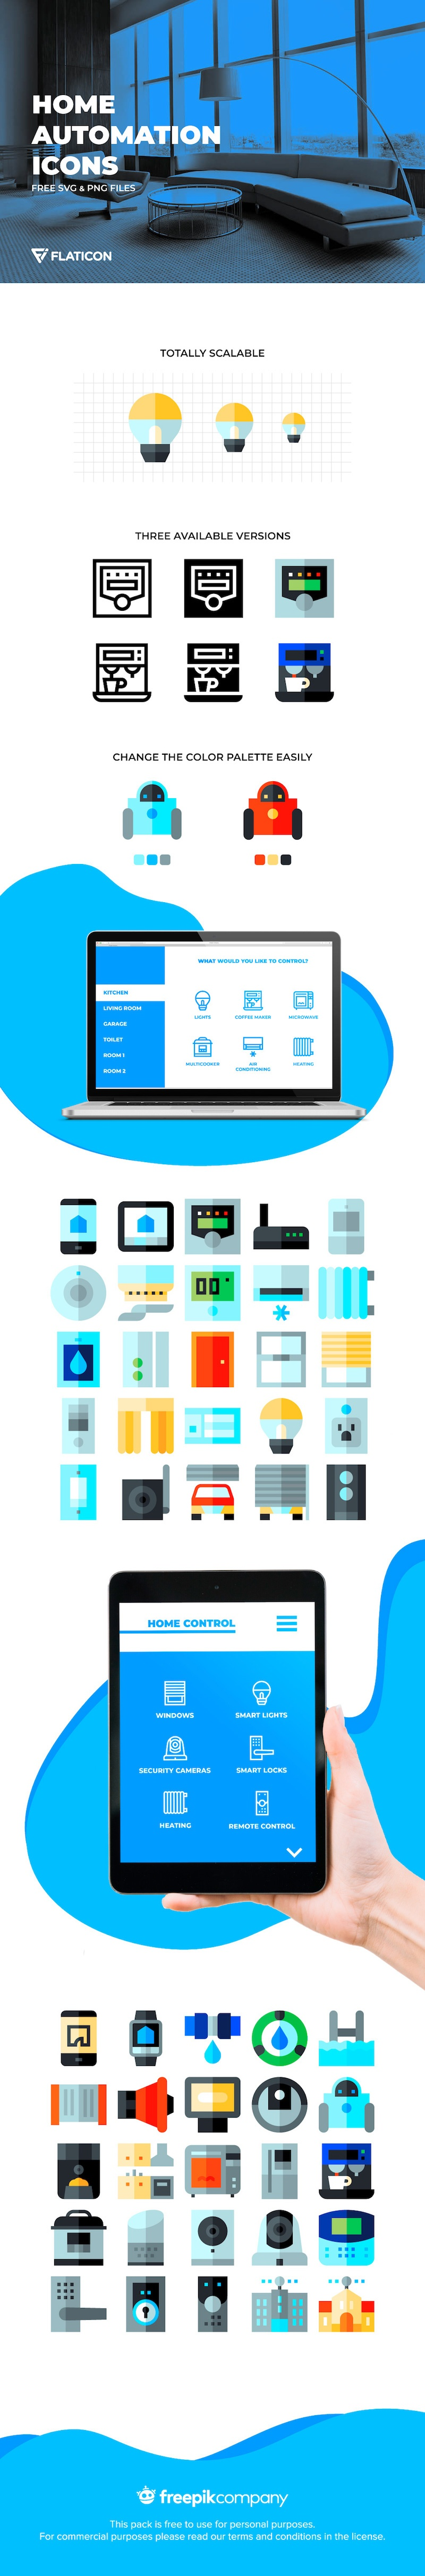 free home automation icons svg png